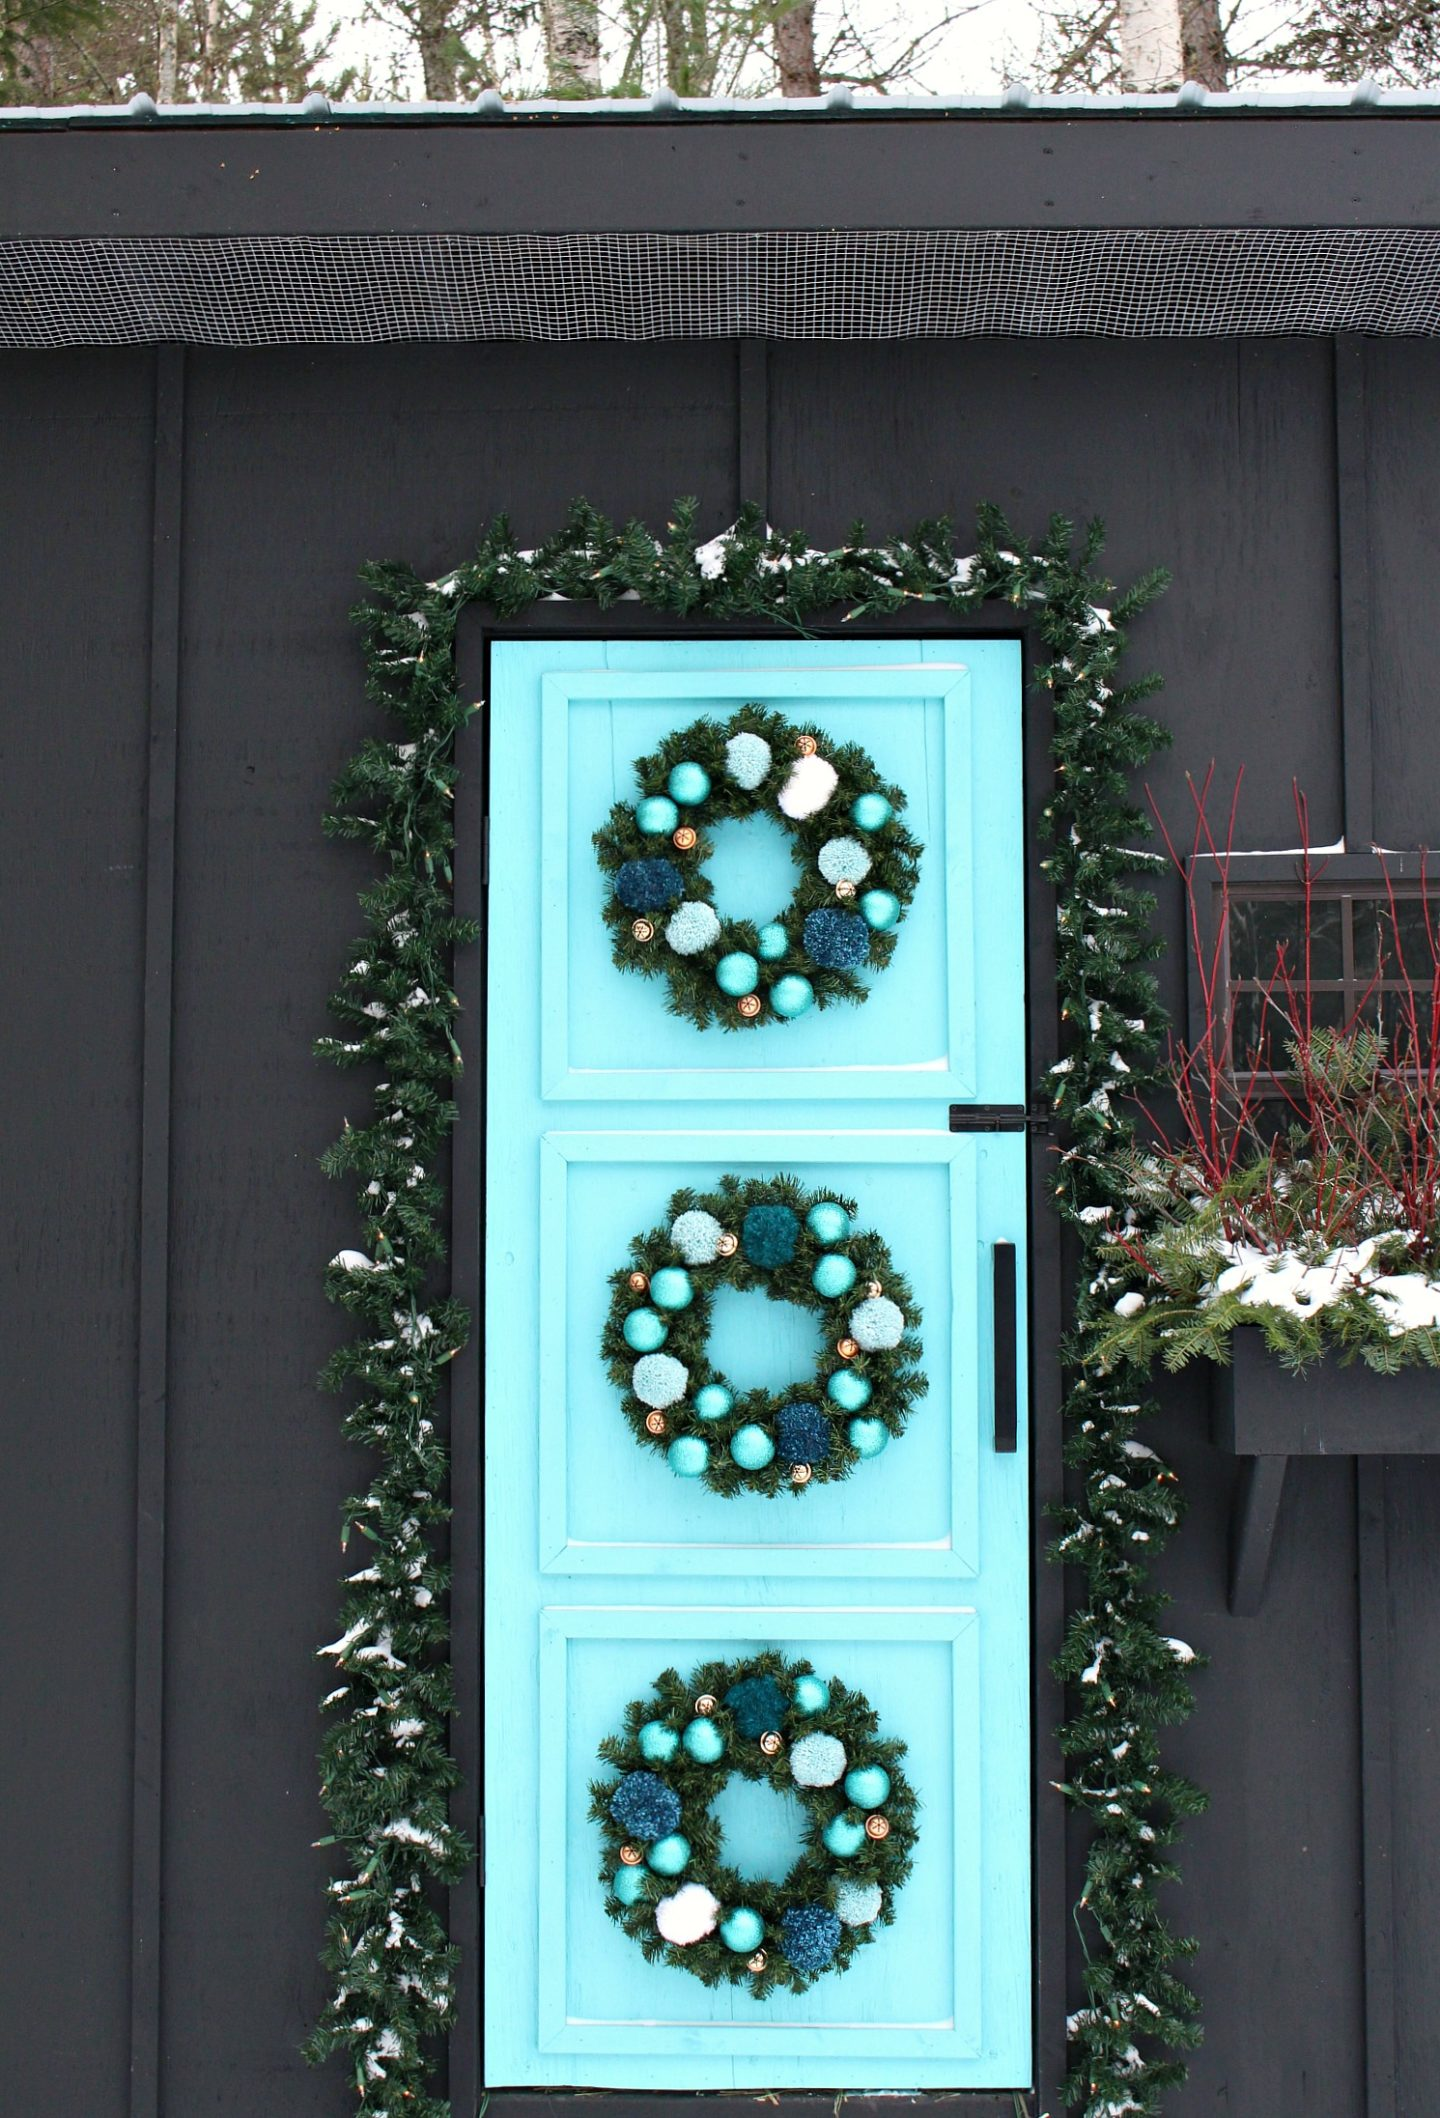 Easy DIY Pom Pom Wreath + My Holiday Chicken Coop Decor